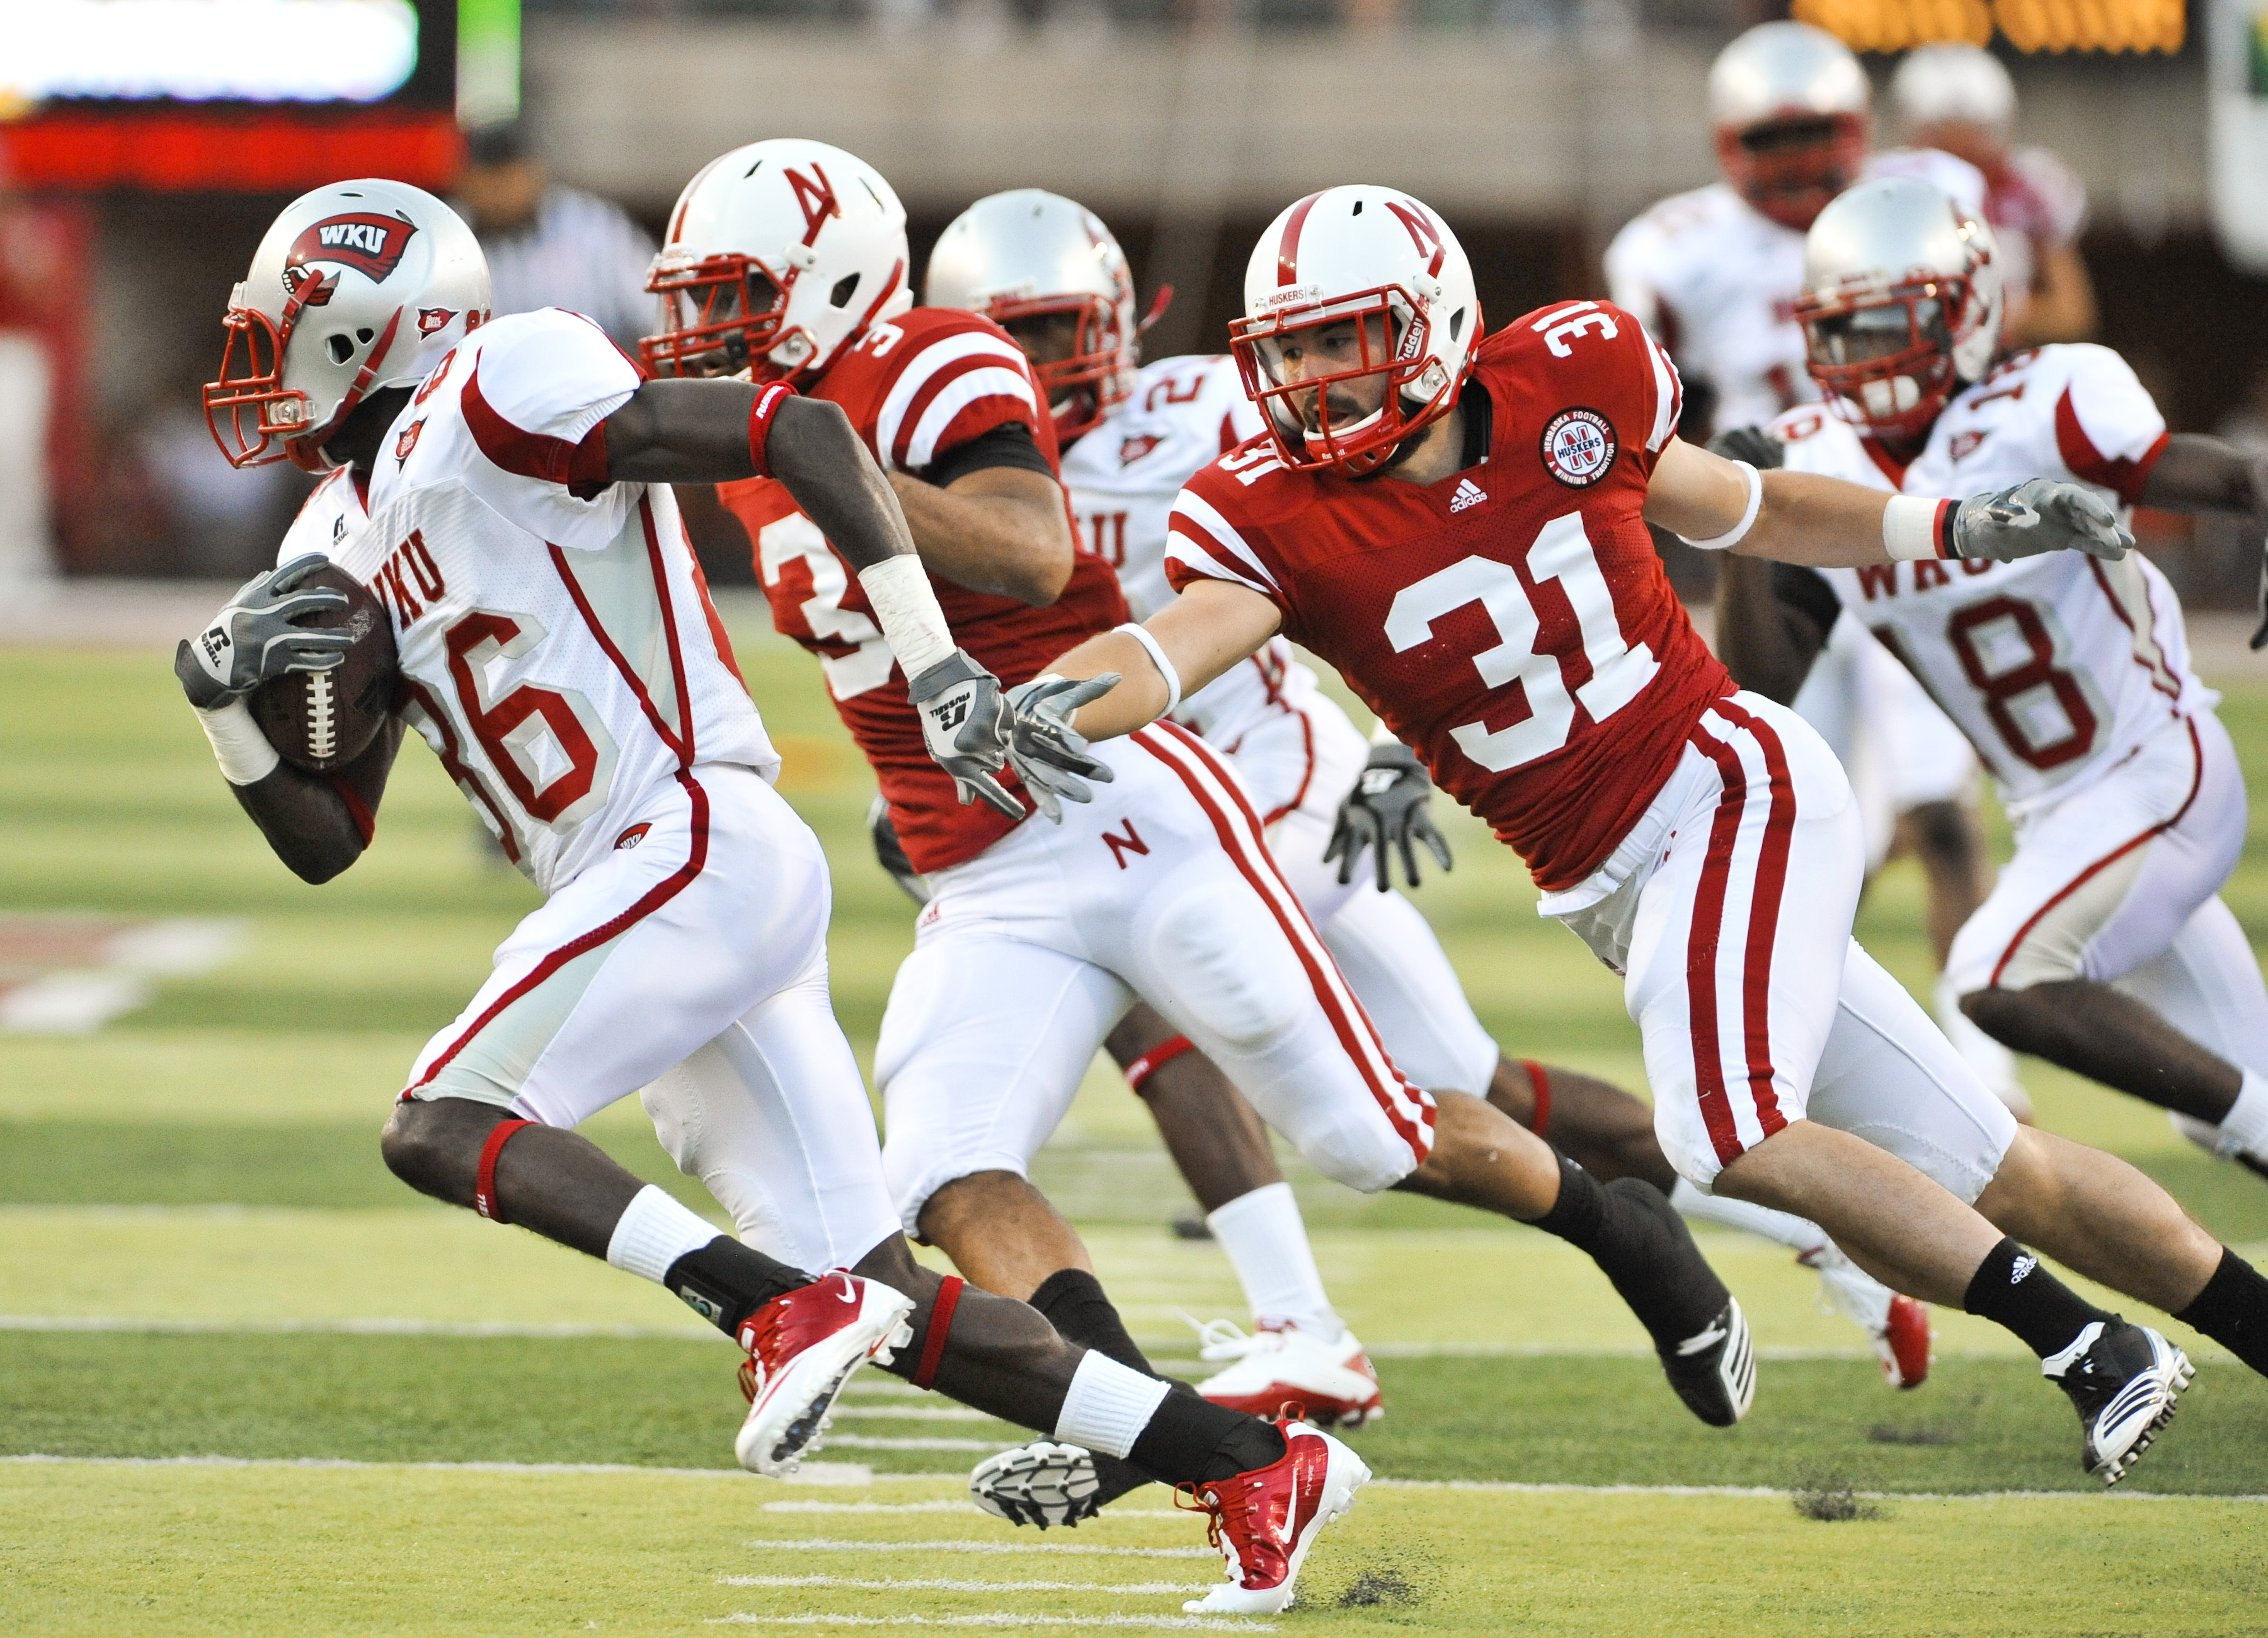 LINCOLN, NE - SEPTEMBER 04: Willie McNeal of the Western Kentucky Hilltoppers attempts to out run Jase Dean #31 of the Nebraska Cornhuskers after a mishandled punt during first half action of their game at Memorial Stadium on September 4, 2010 in Lincoln,